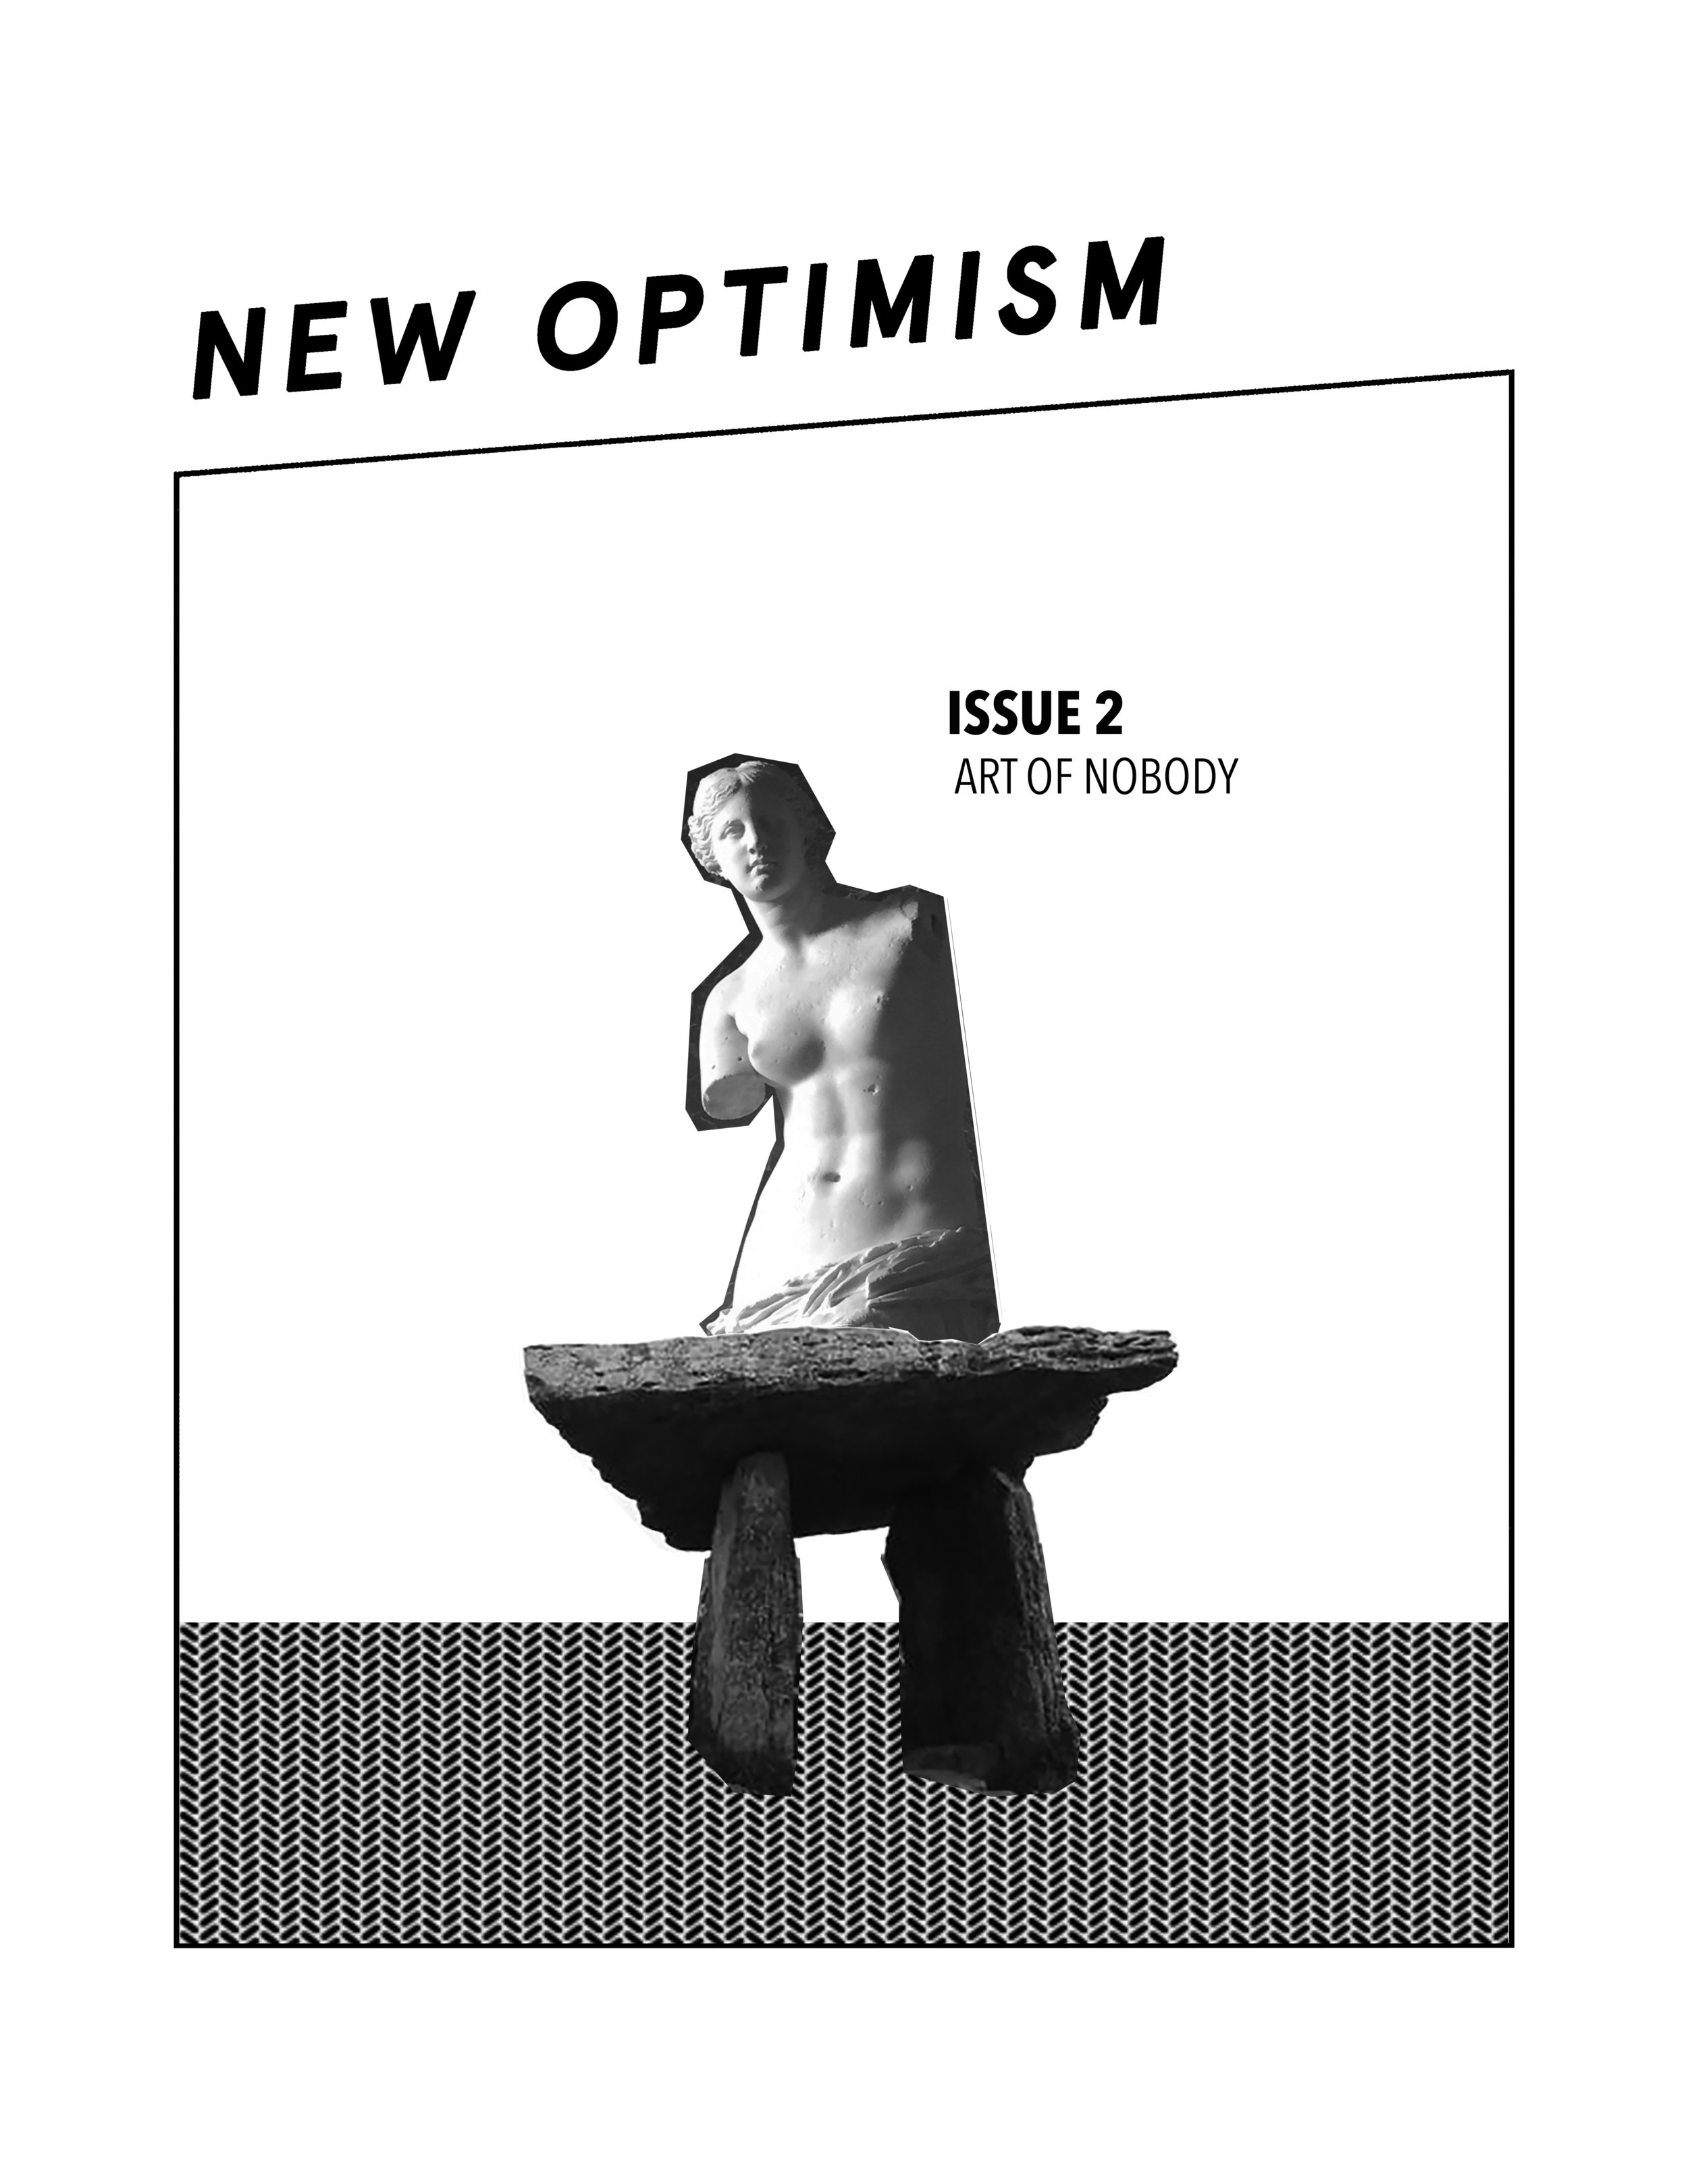 NEW OPTIMISM SWEATSHIRTS DESIGN